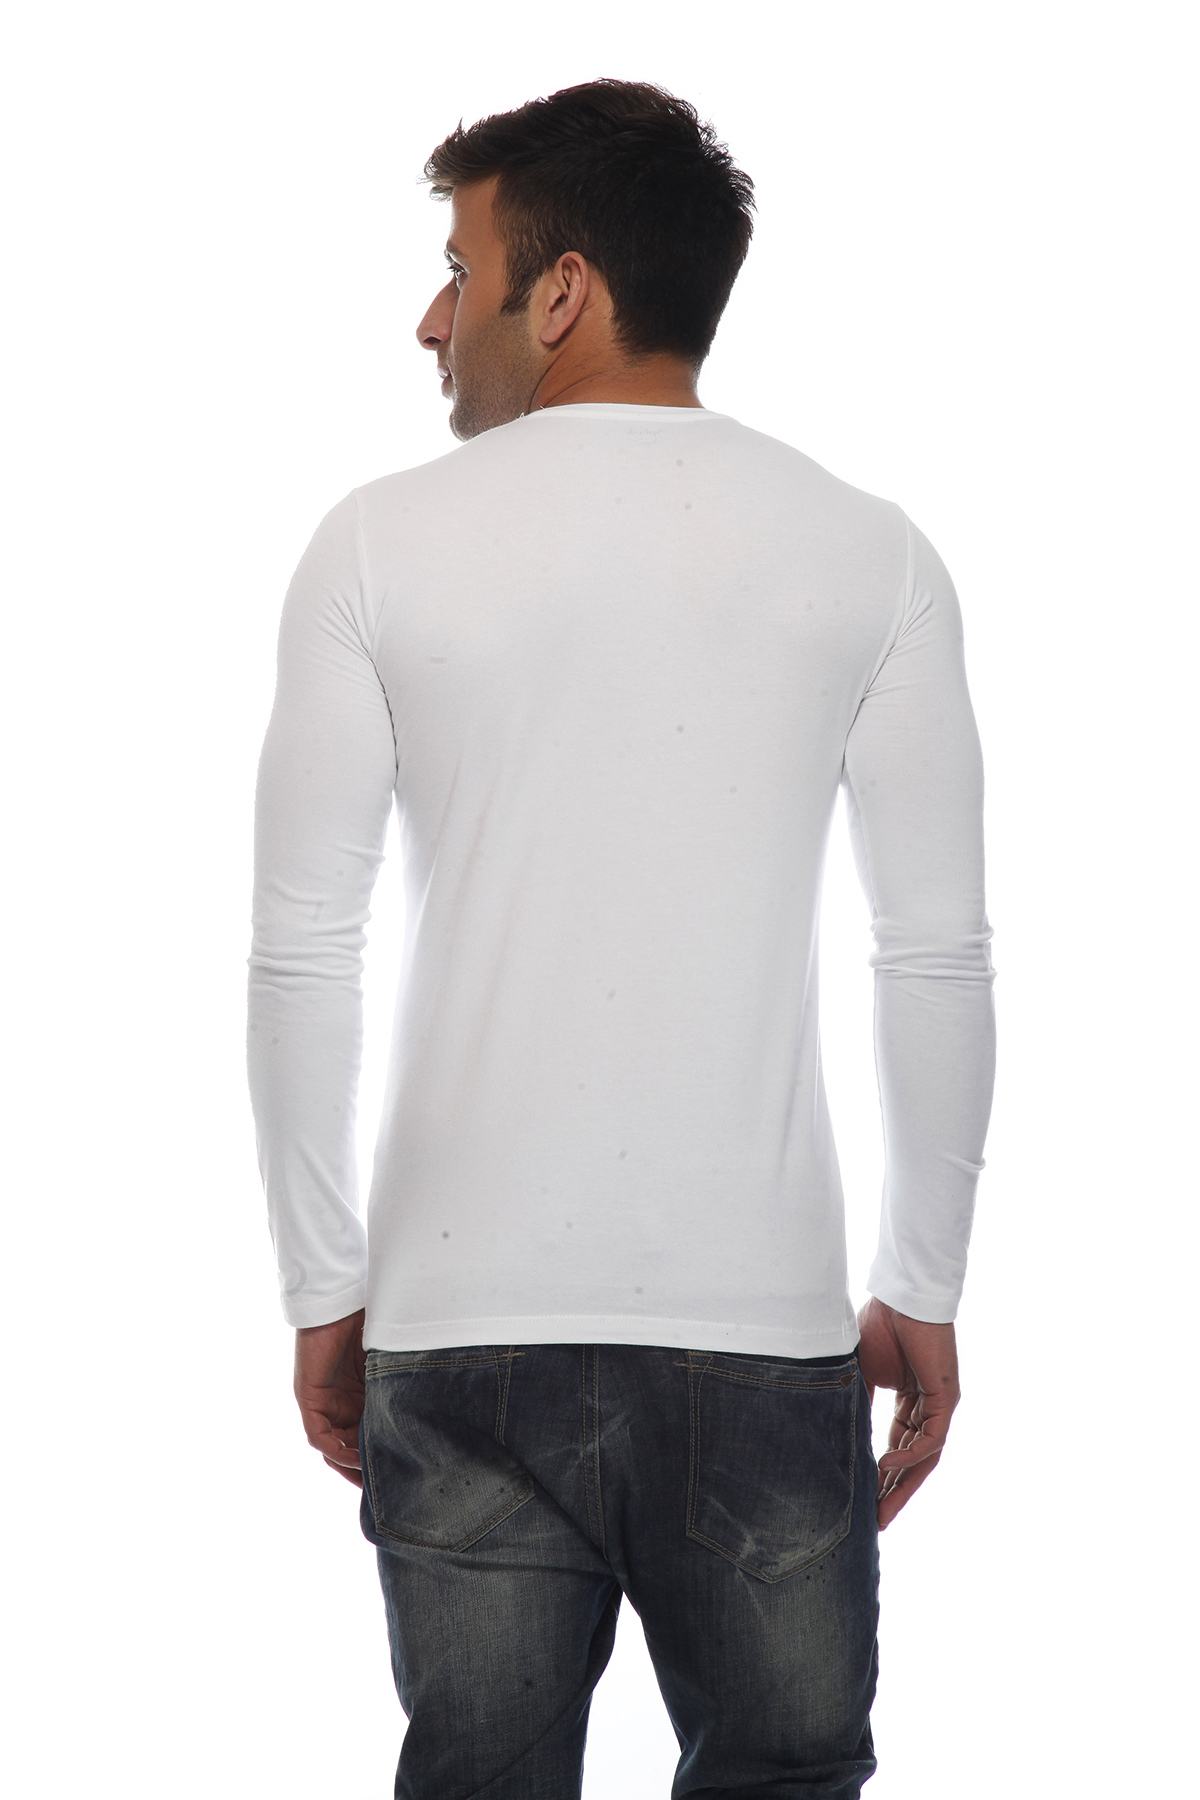 DS White Cotton Lycra Full Sleeves Regular Fit Polo T-shirt